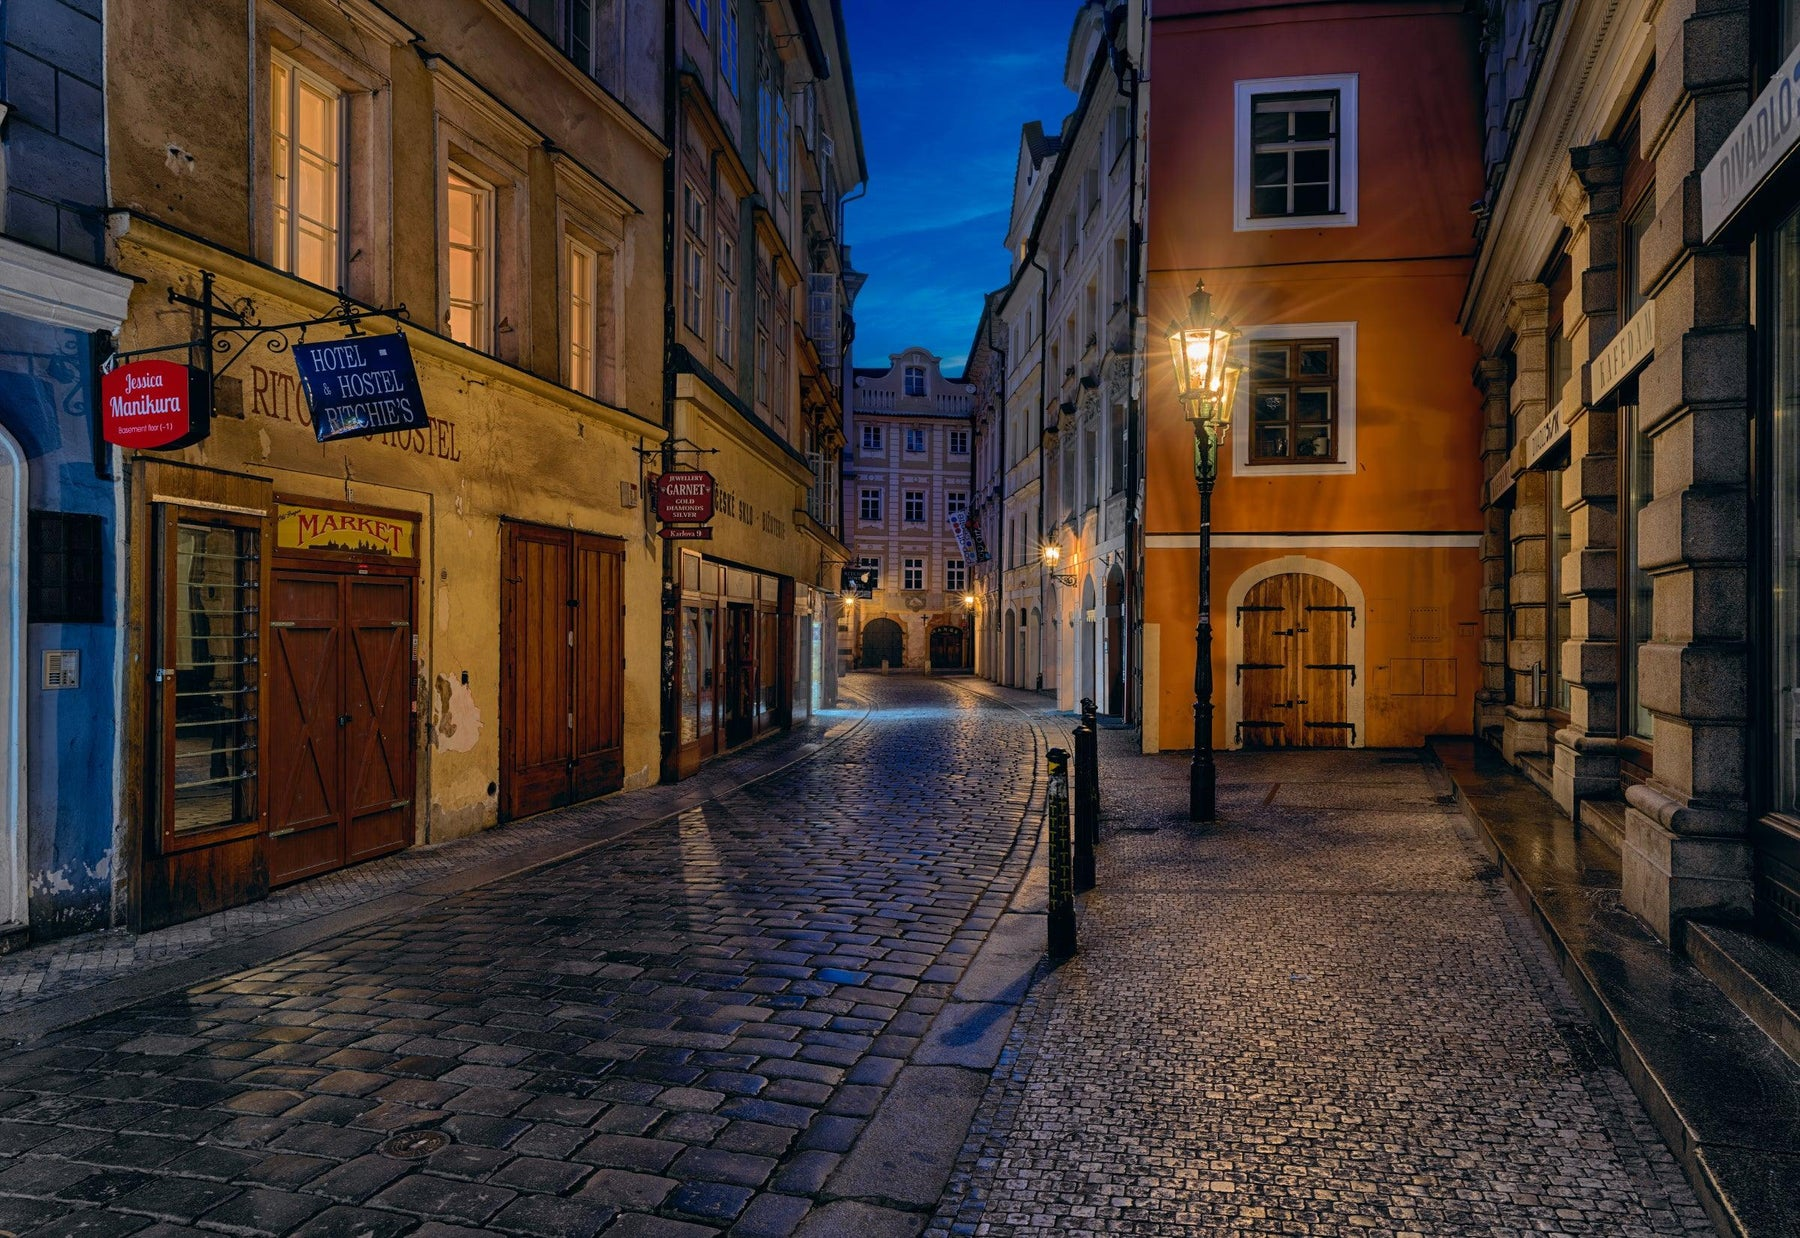 Stone brick street leading through the old lamp lit buildings of Prague Czech Republic